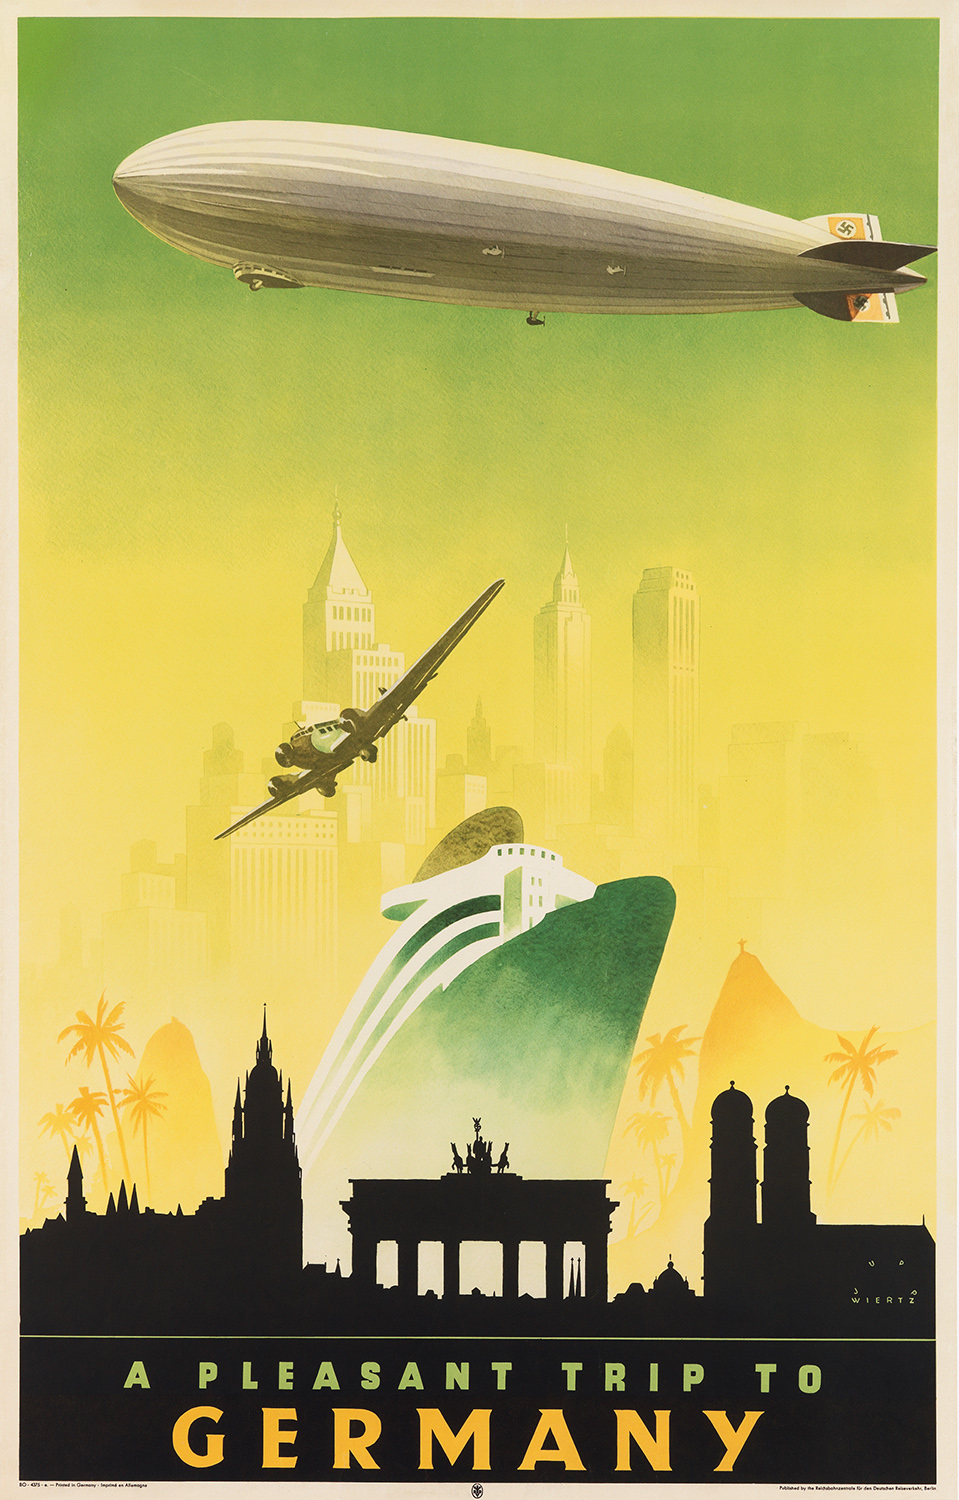 A mid-1930s German travel poster that includes the Hindenburg zeppelin.